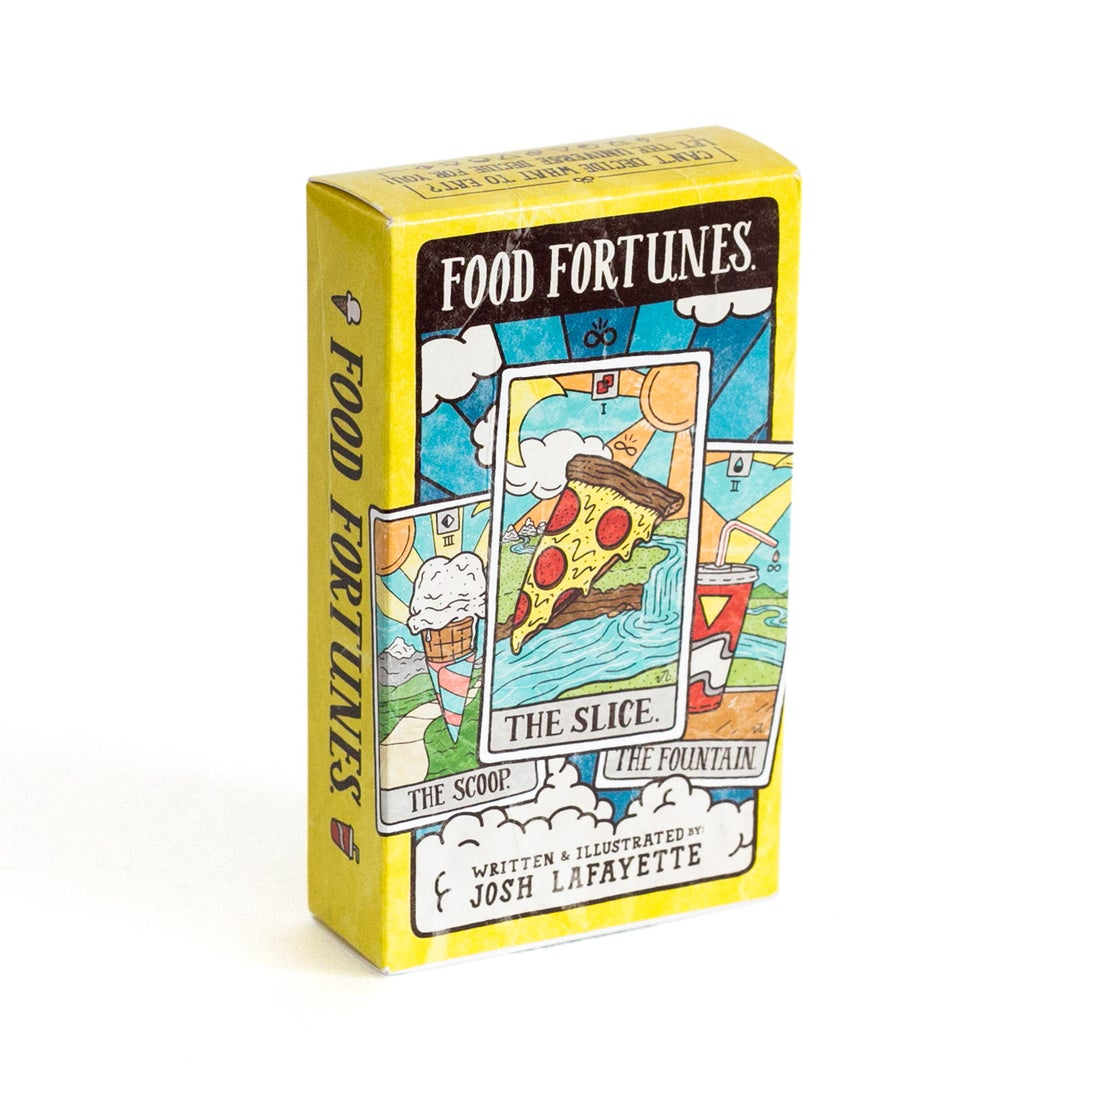 Image of Food Fortunes